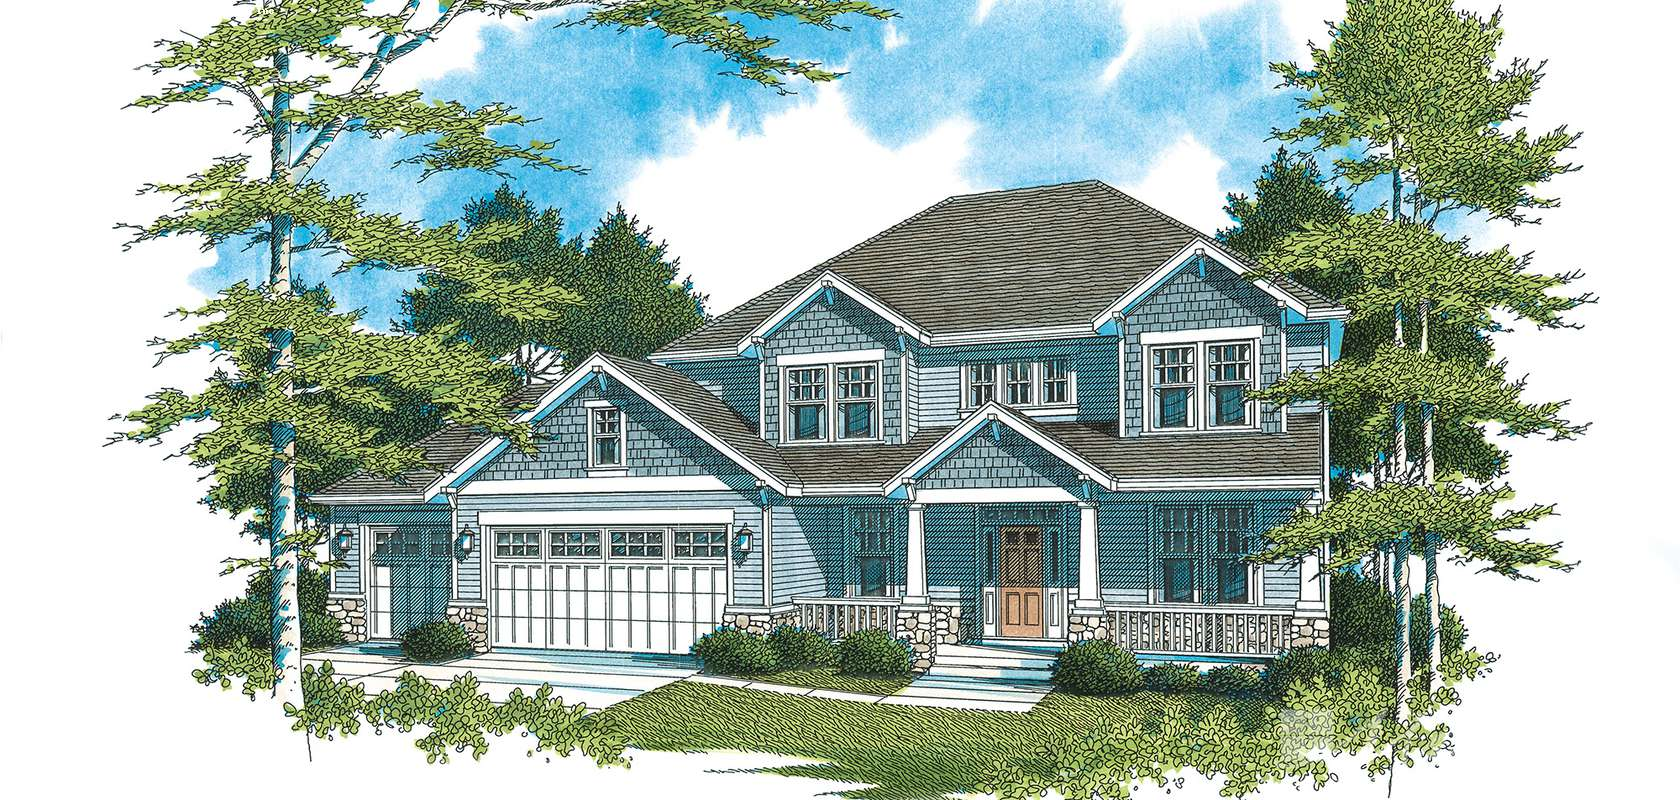 Mascord House Plan 2212GM: The Freemont